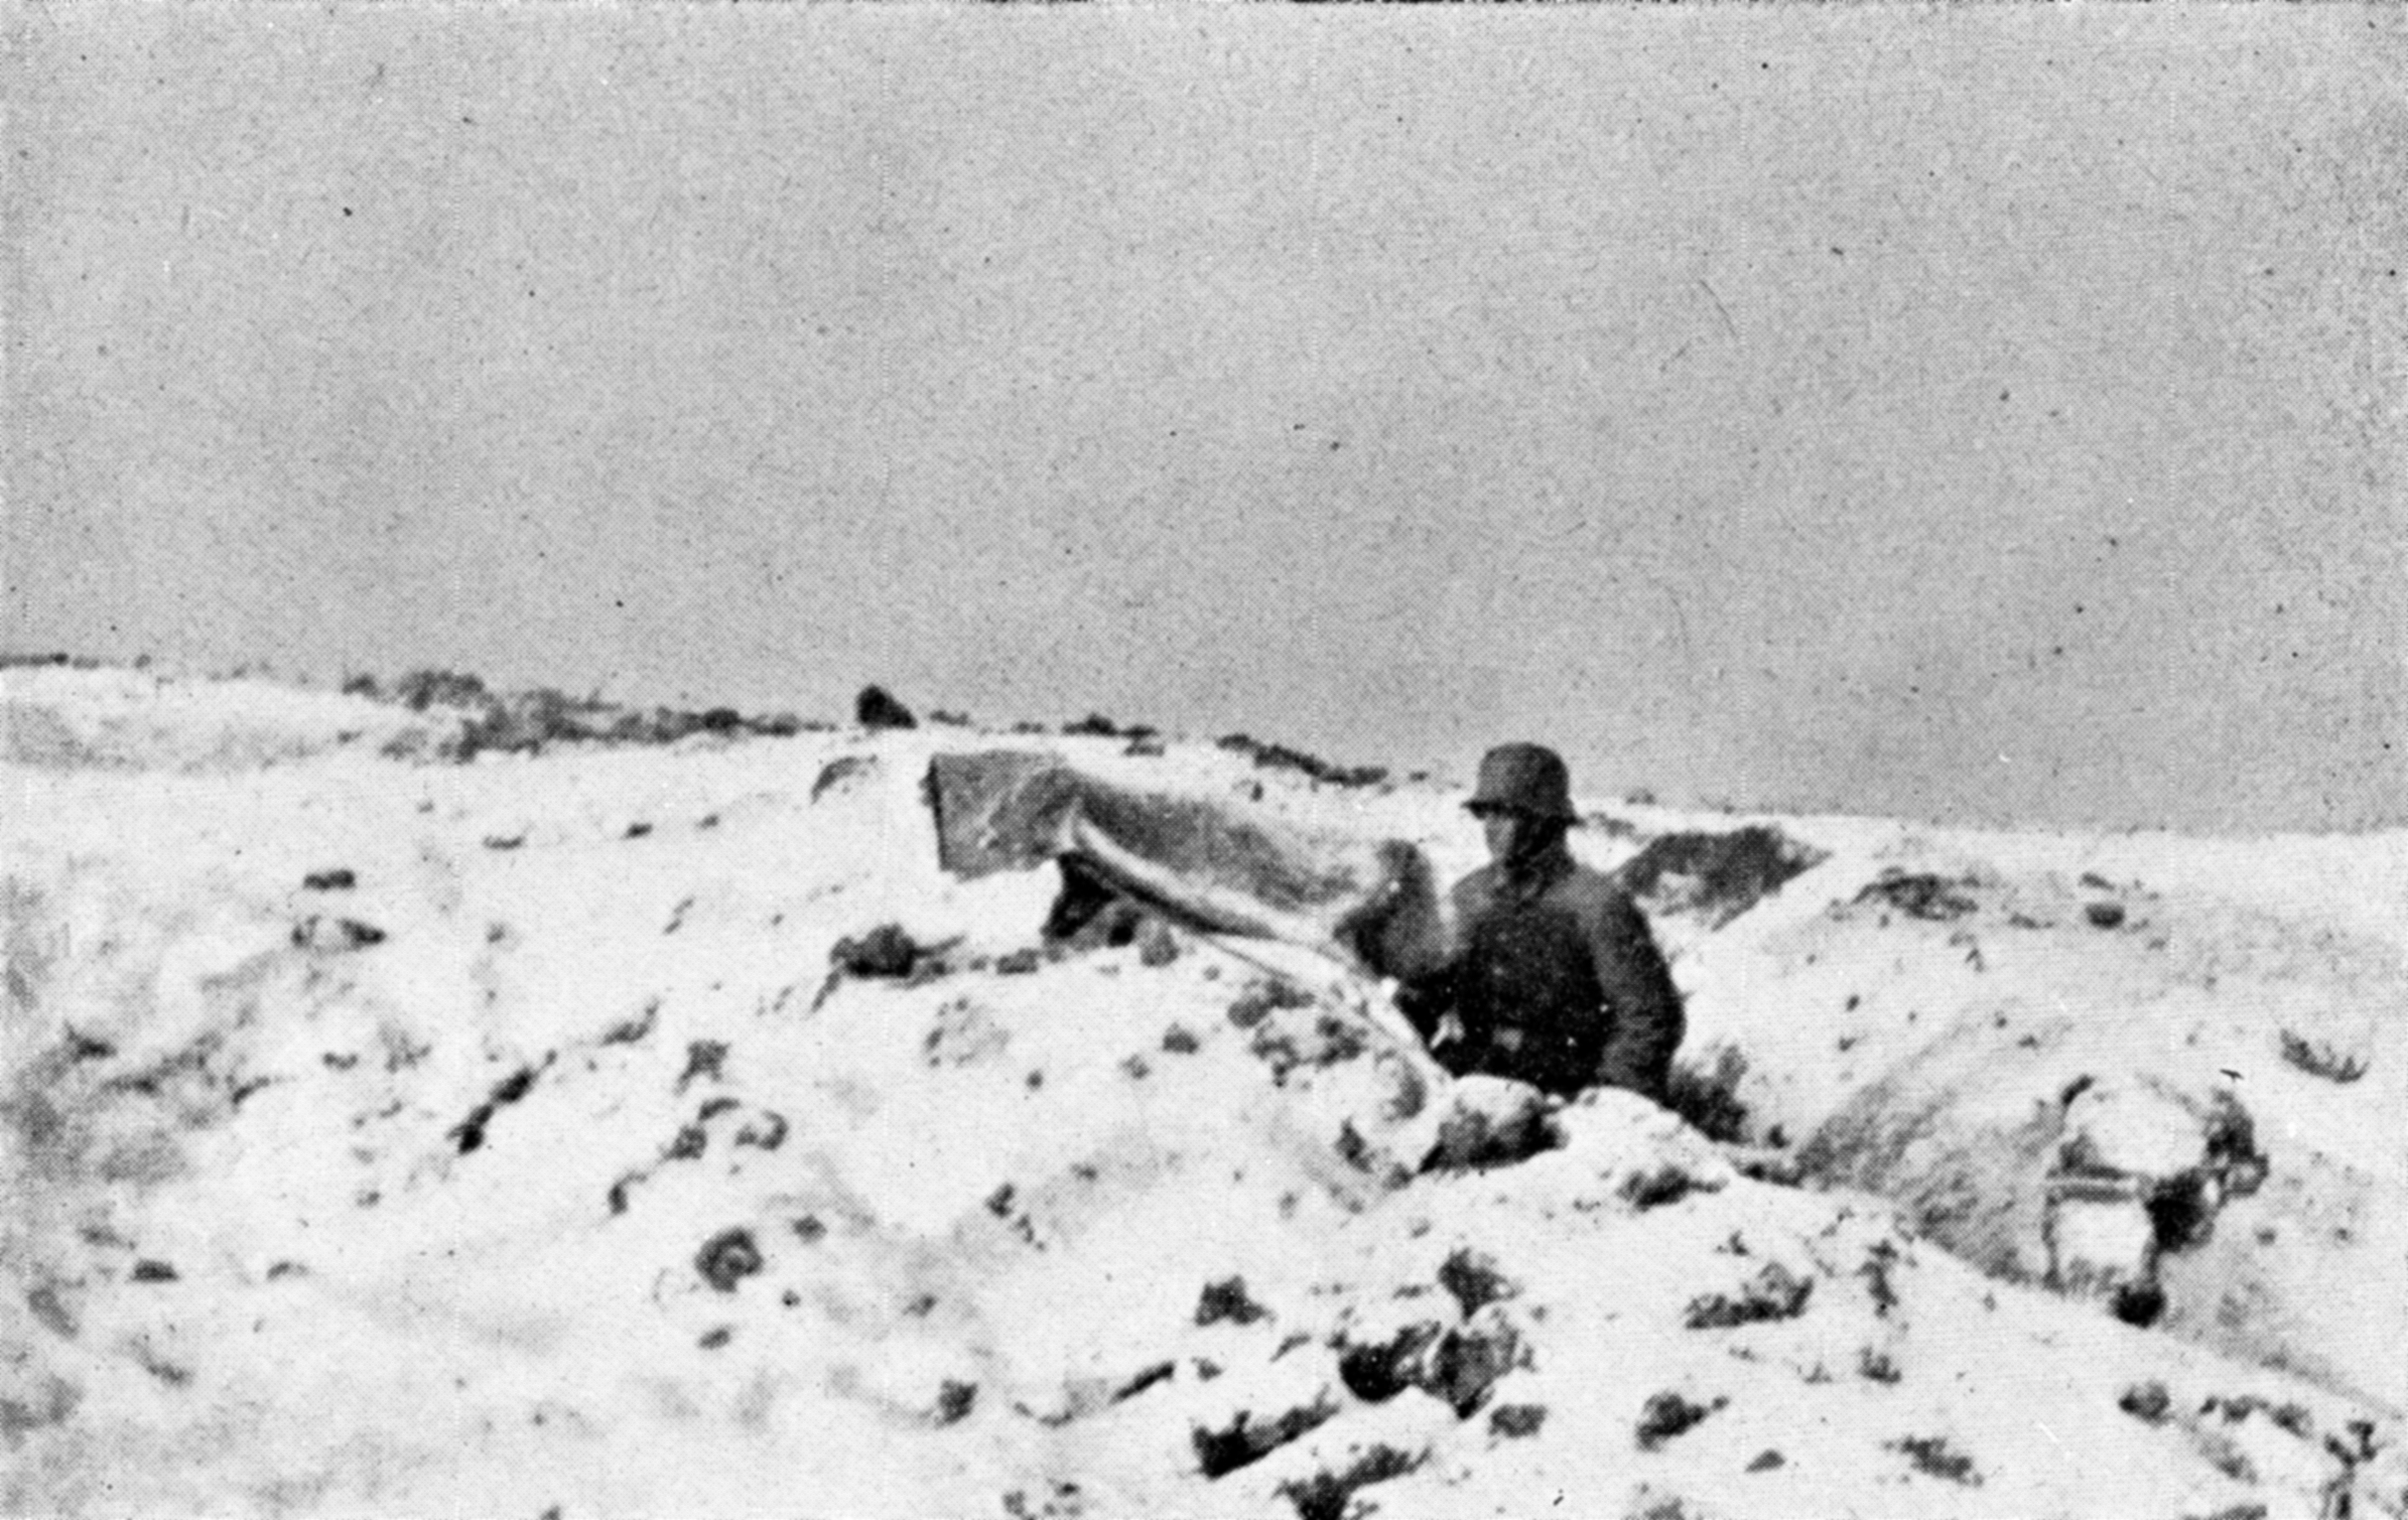 1917 Great War Photos Battle Story Cambrai This Image Which Makes You Cold Just By Looking At It Is Perhaps More Reminiscent Of The Eastern Front In Ww2 But Fact Was Taken Early